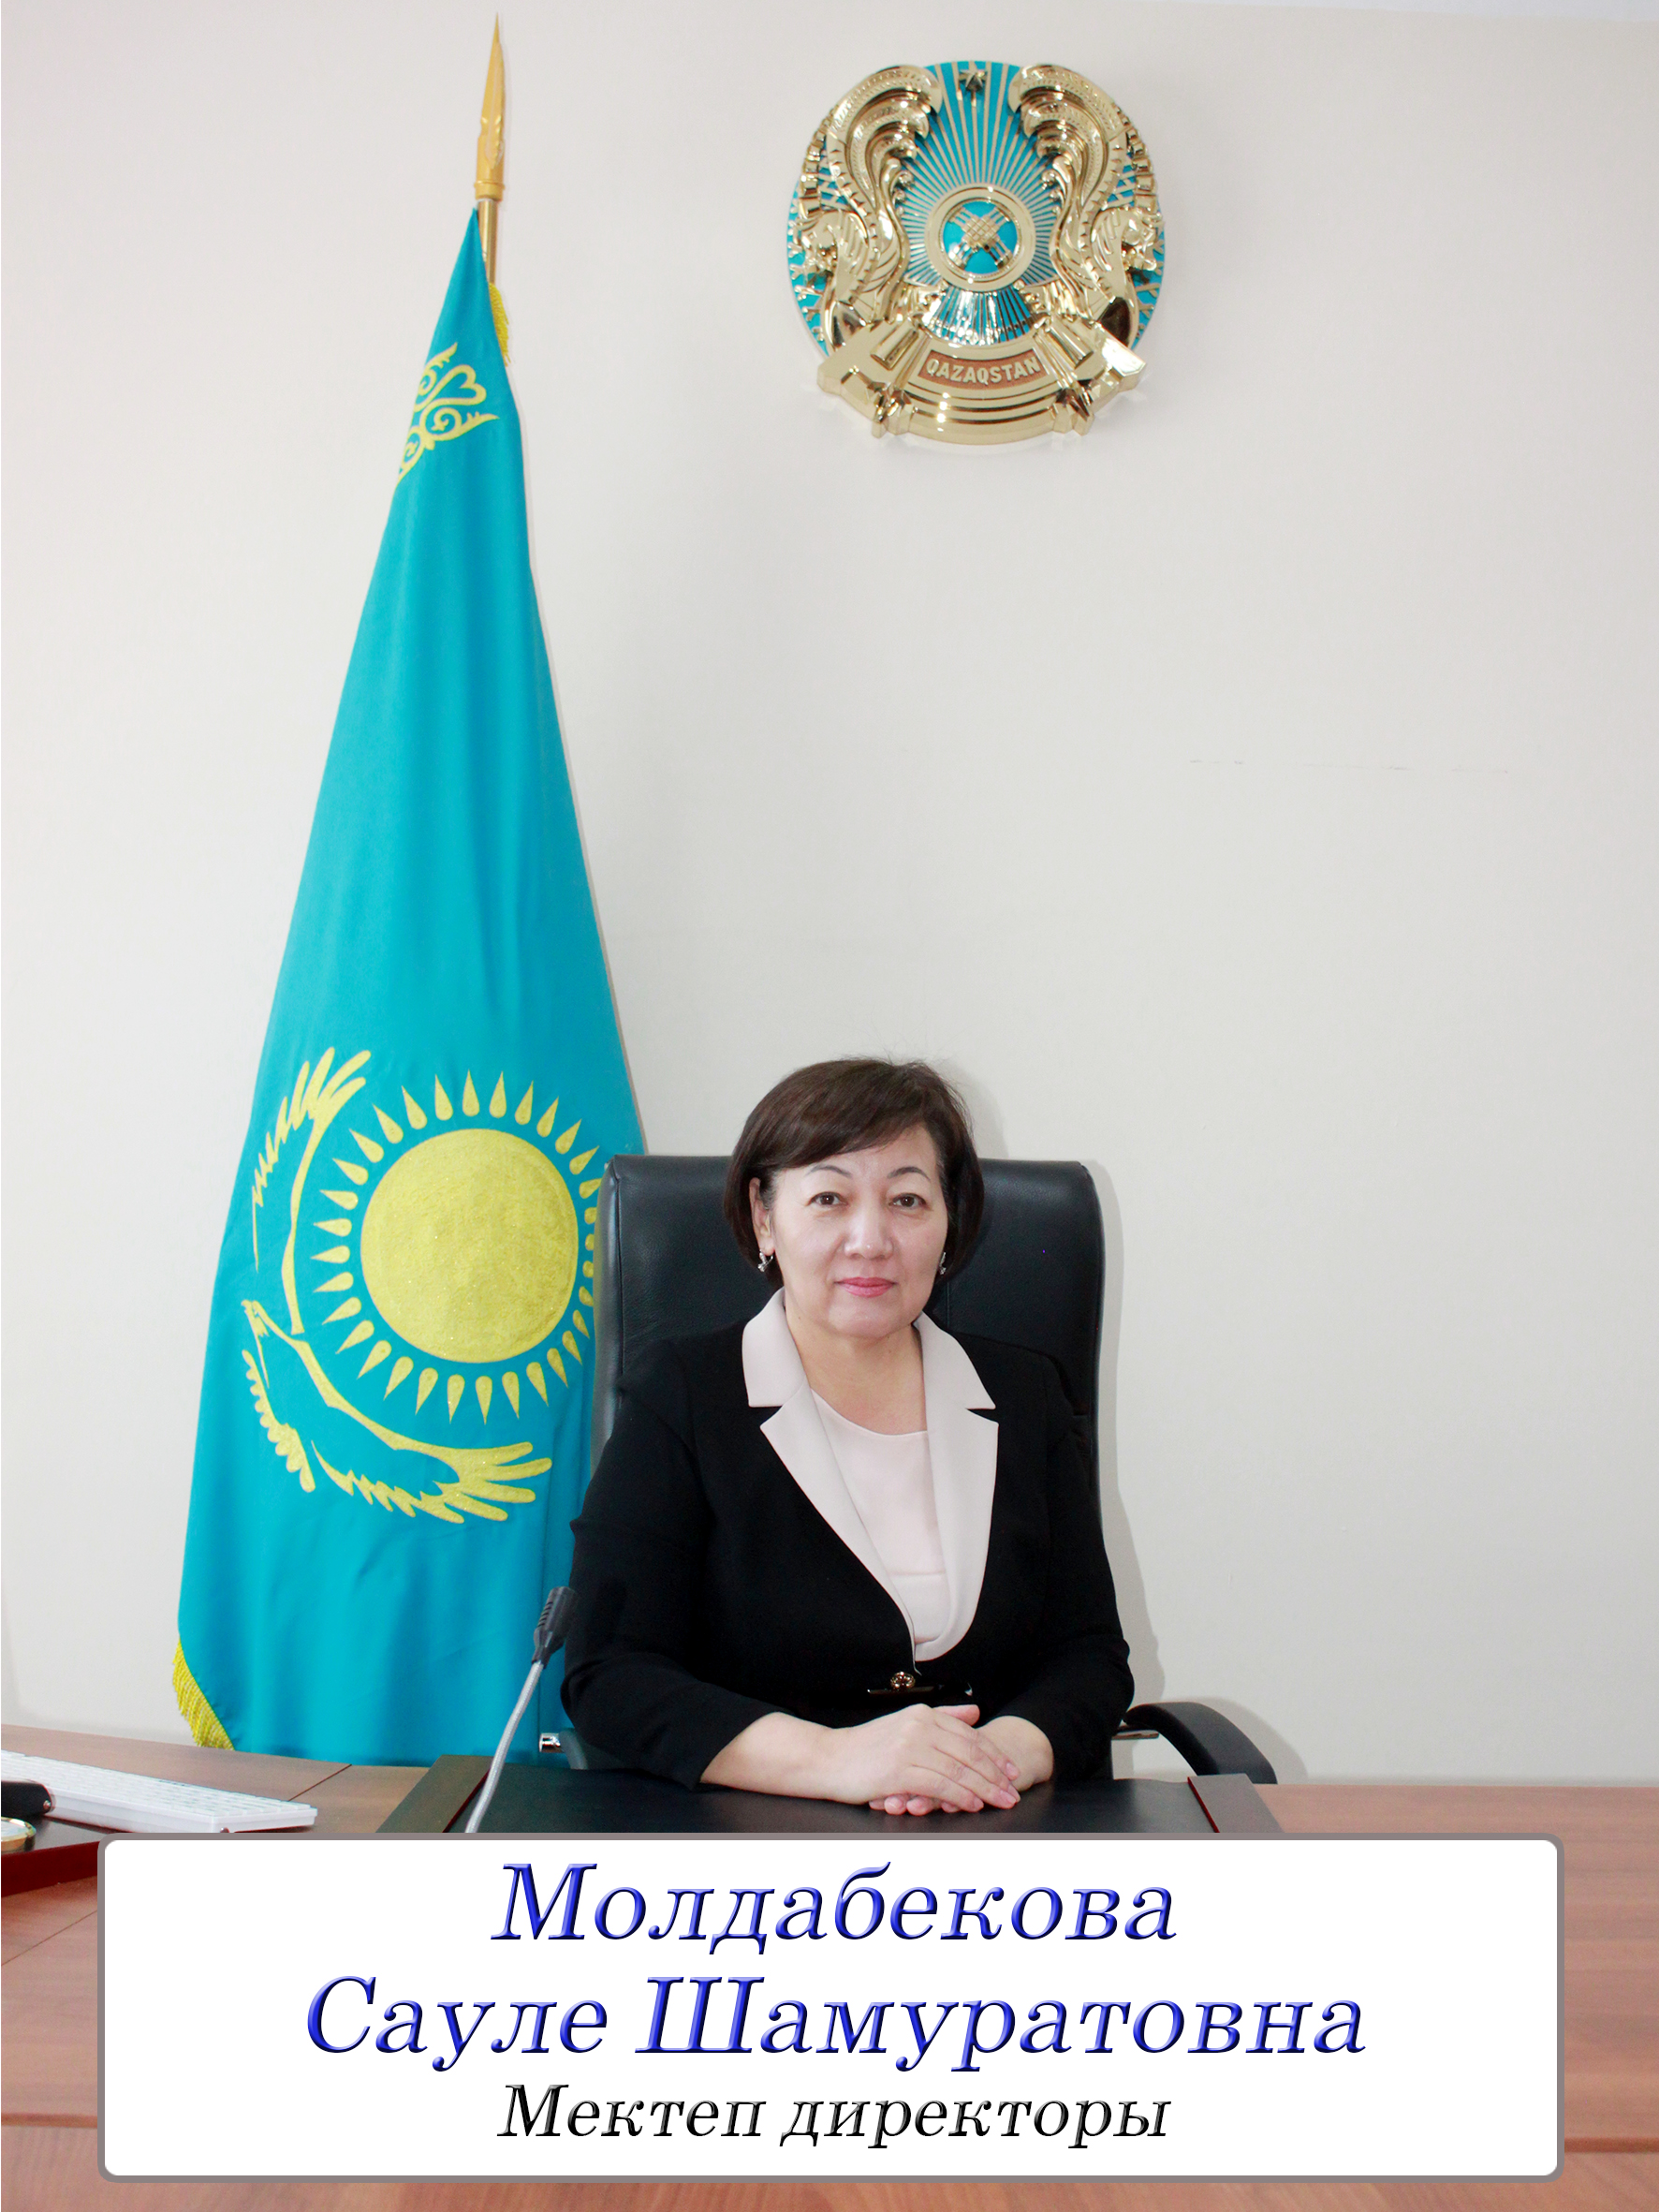 https://70.astana-bilim.kz/files/sites/1383501768618965/files/photo%202019/1.jpg?_t=1554101133